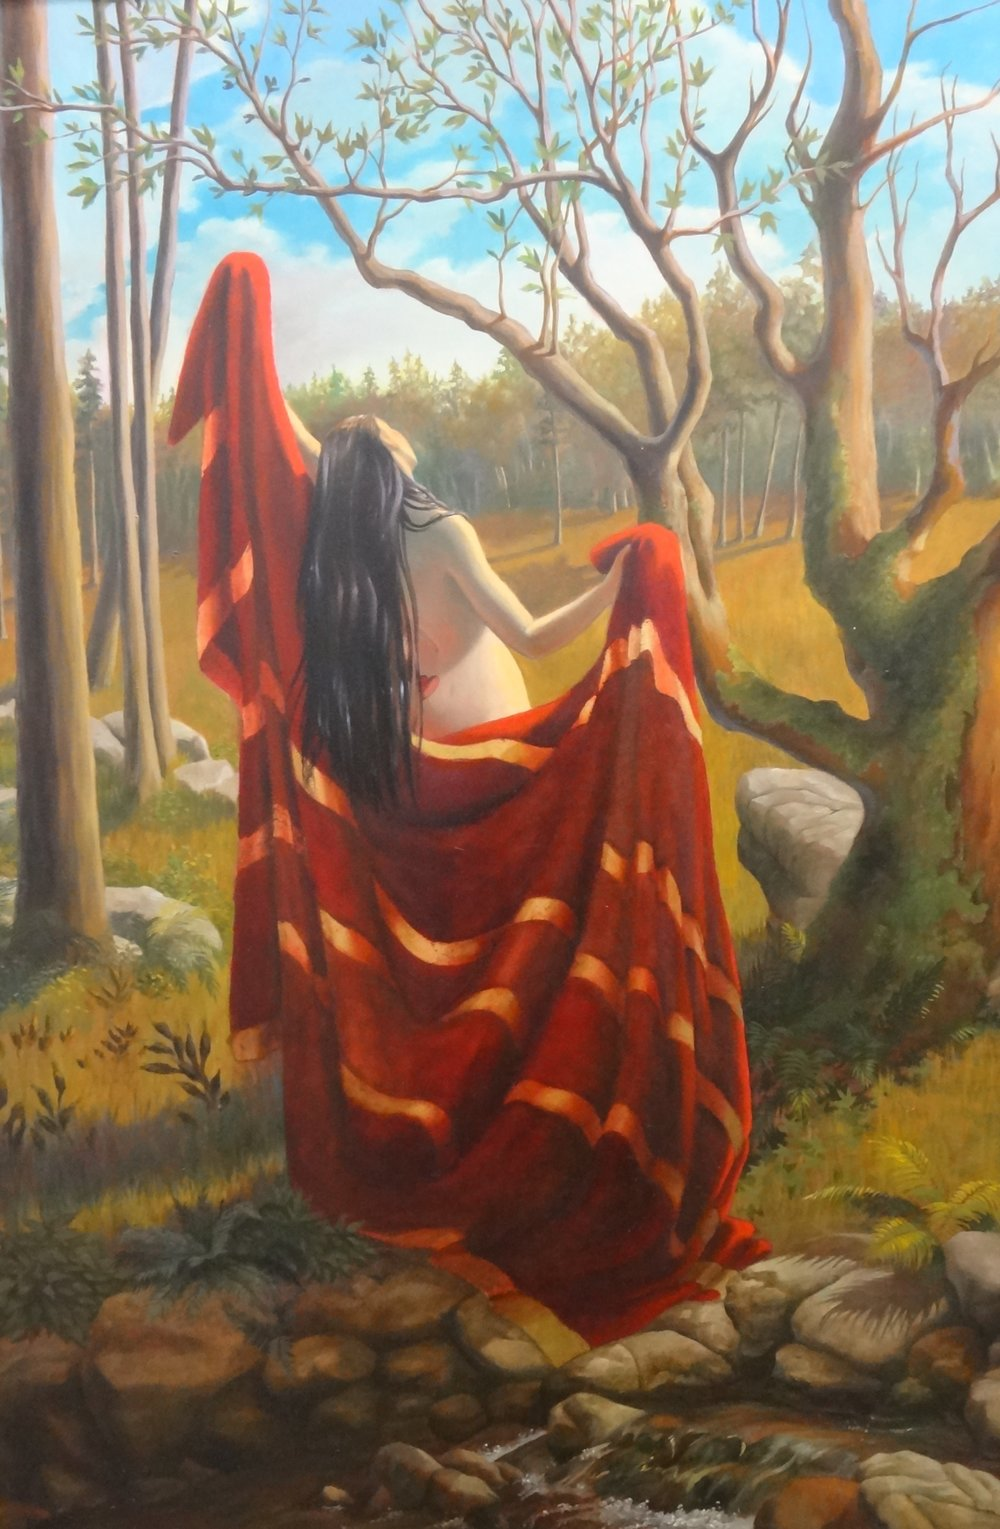 "Title:Sunday Nature Girl Appalachian  Artist:  Susan Makara   Medium: Acrylic on Canvas  Dimensions: 24"" x 36""  Framed: Yes  Price: Contact for Inquiry"